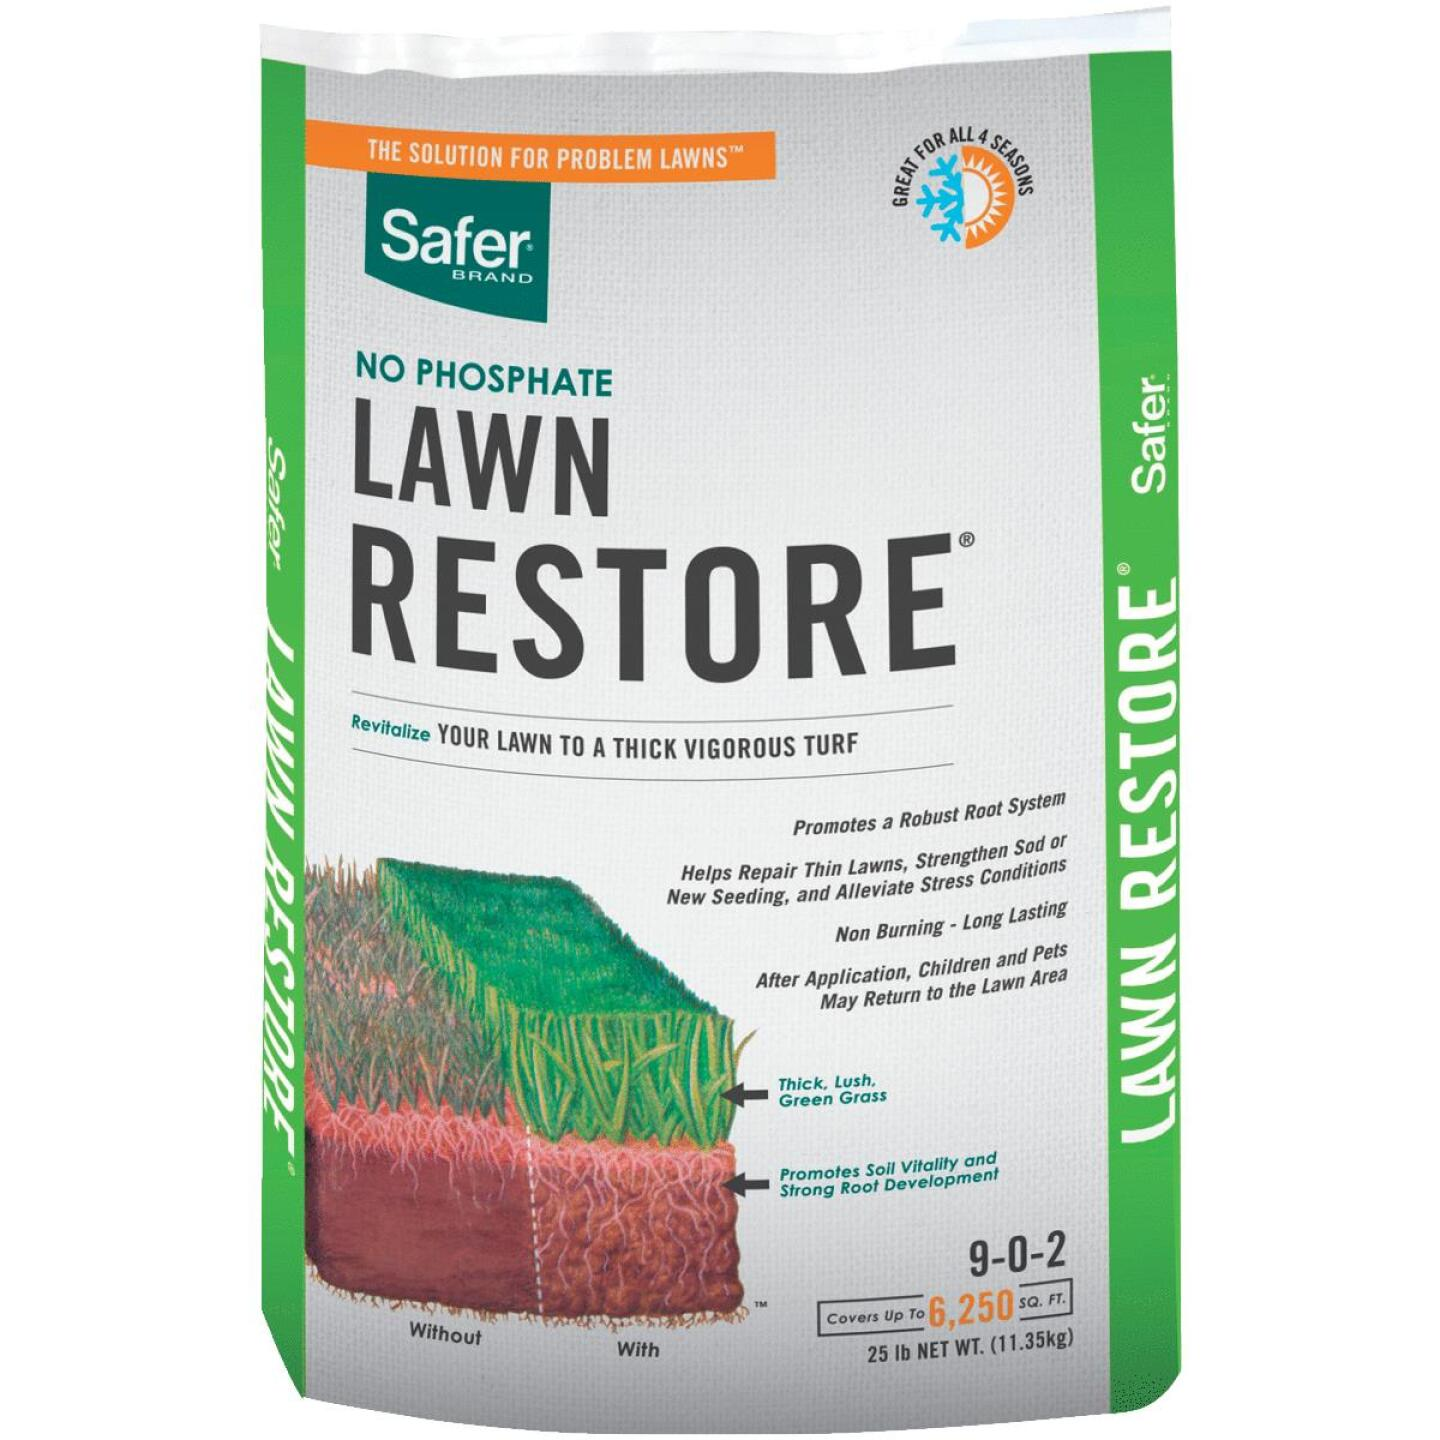 Safer Lawn Restore 25 Lb. 6250 Sq. Ft. 9-0-2 Lawn Fertilizer Image 1